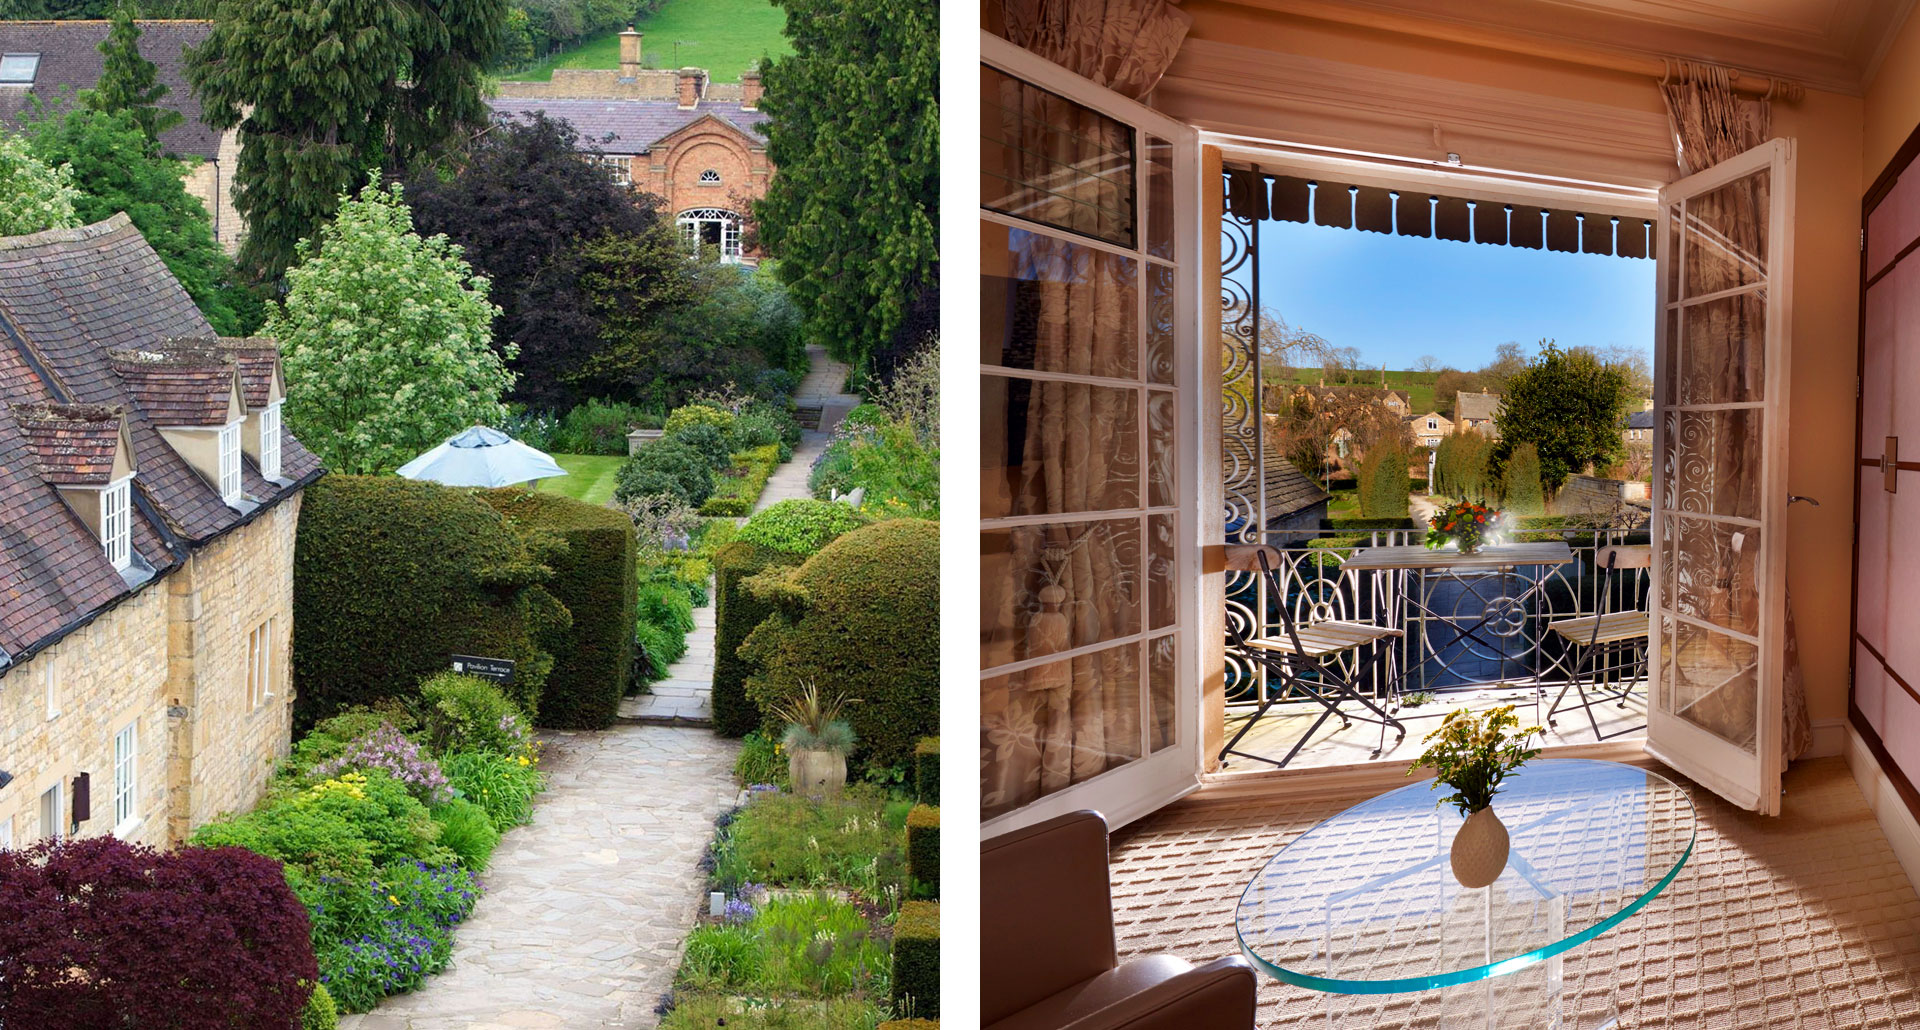 Cotswold House - boutique hotel in Chipping Campden